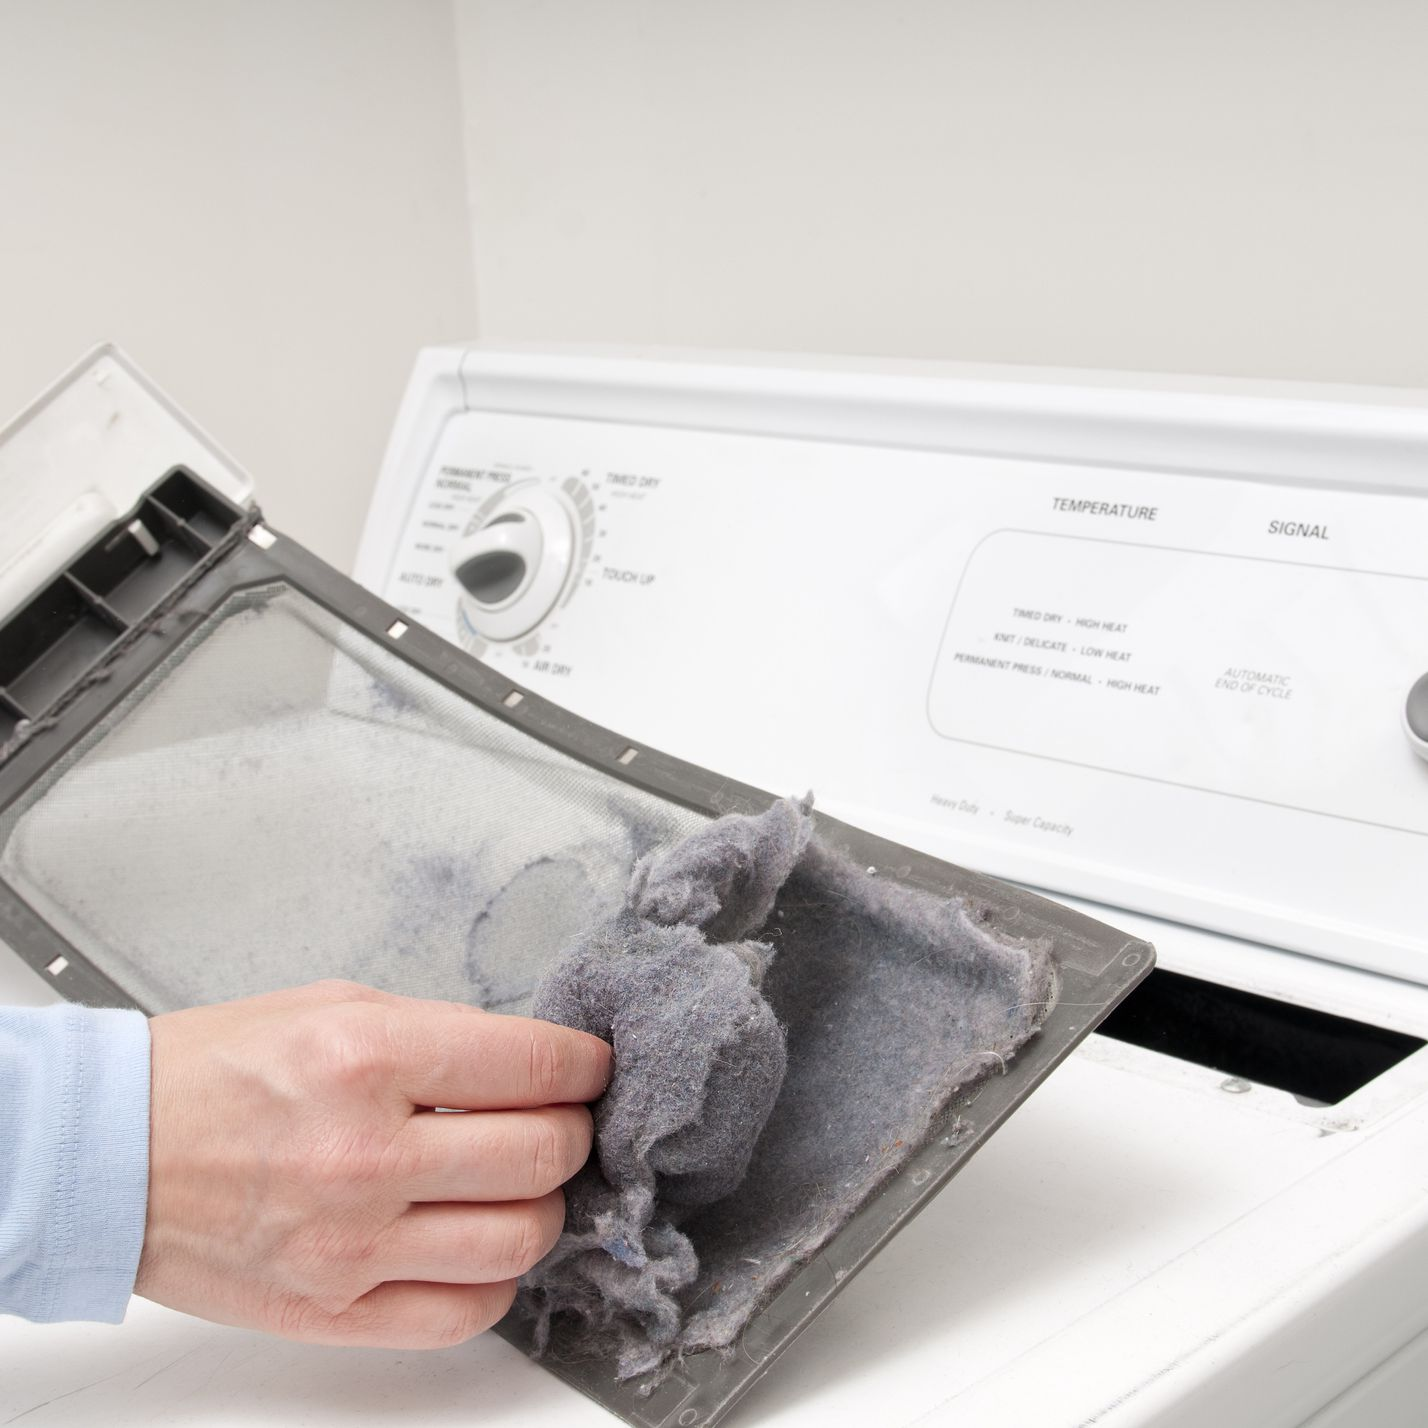 Gas Clothes Dryer Problems and Repairs